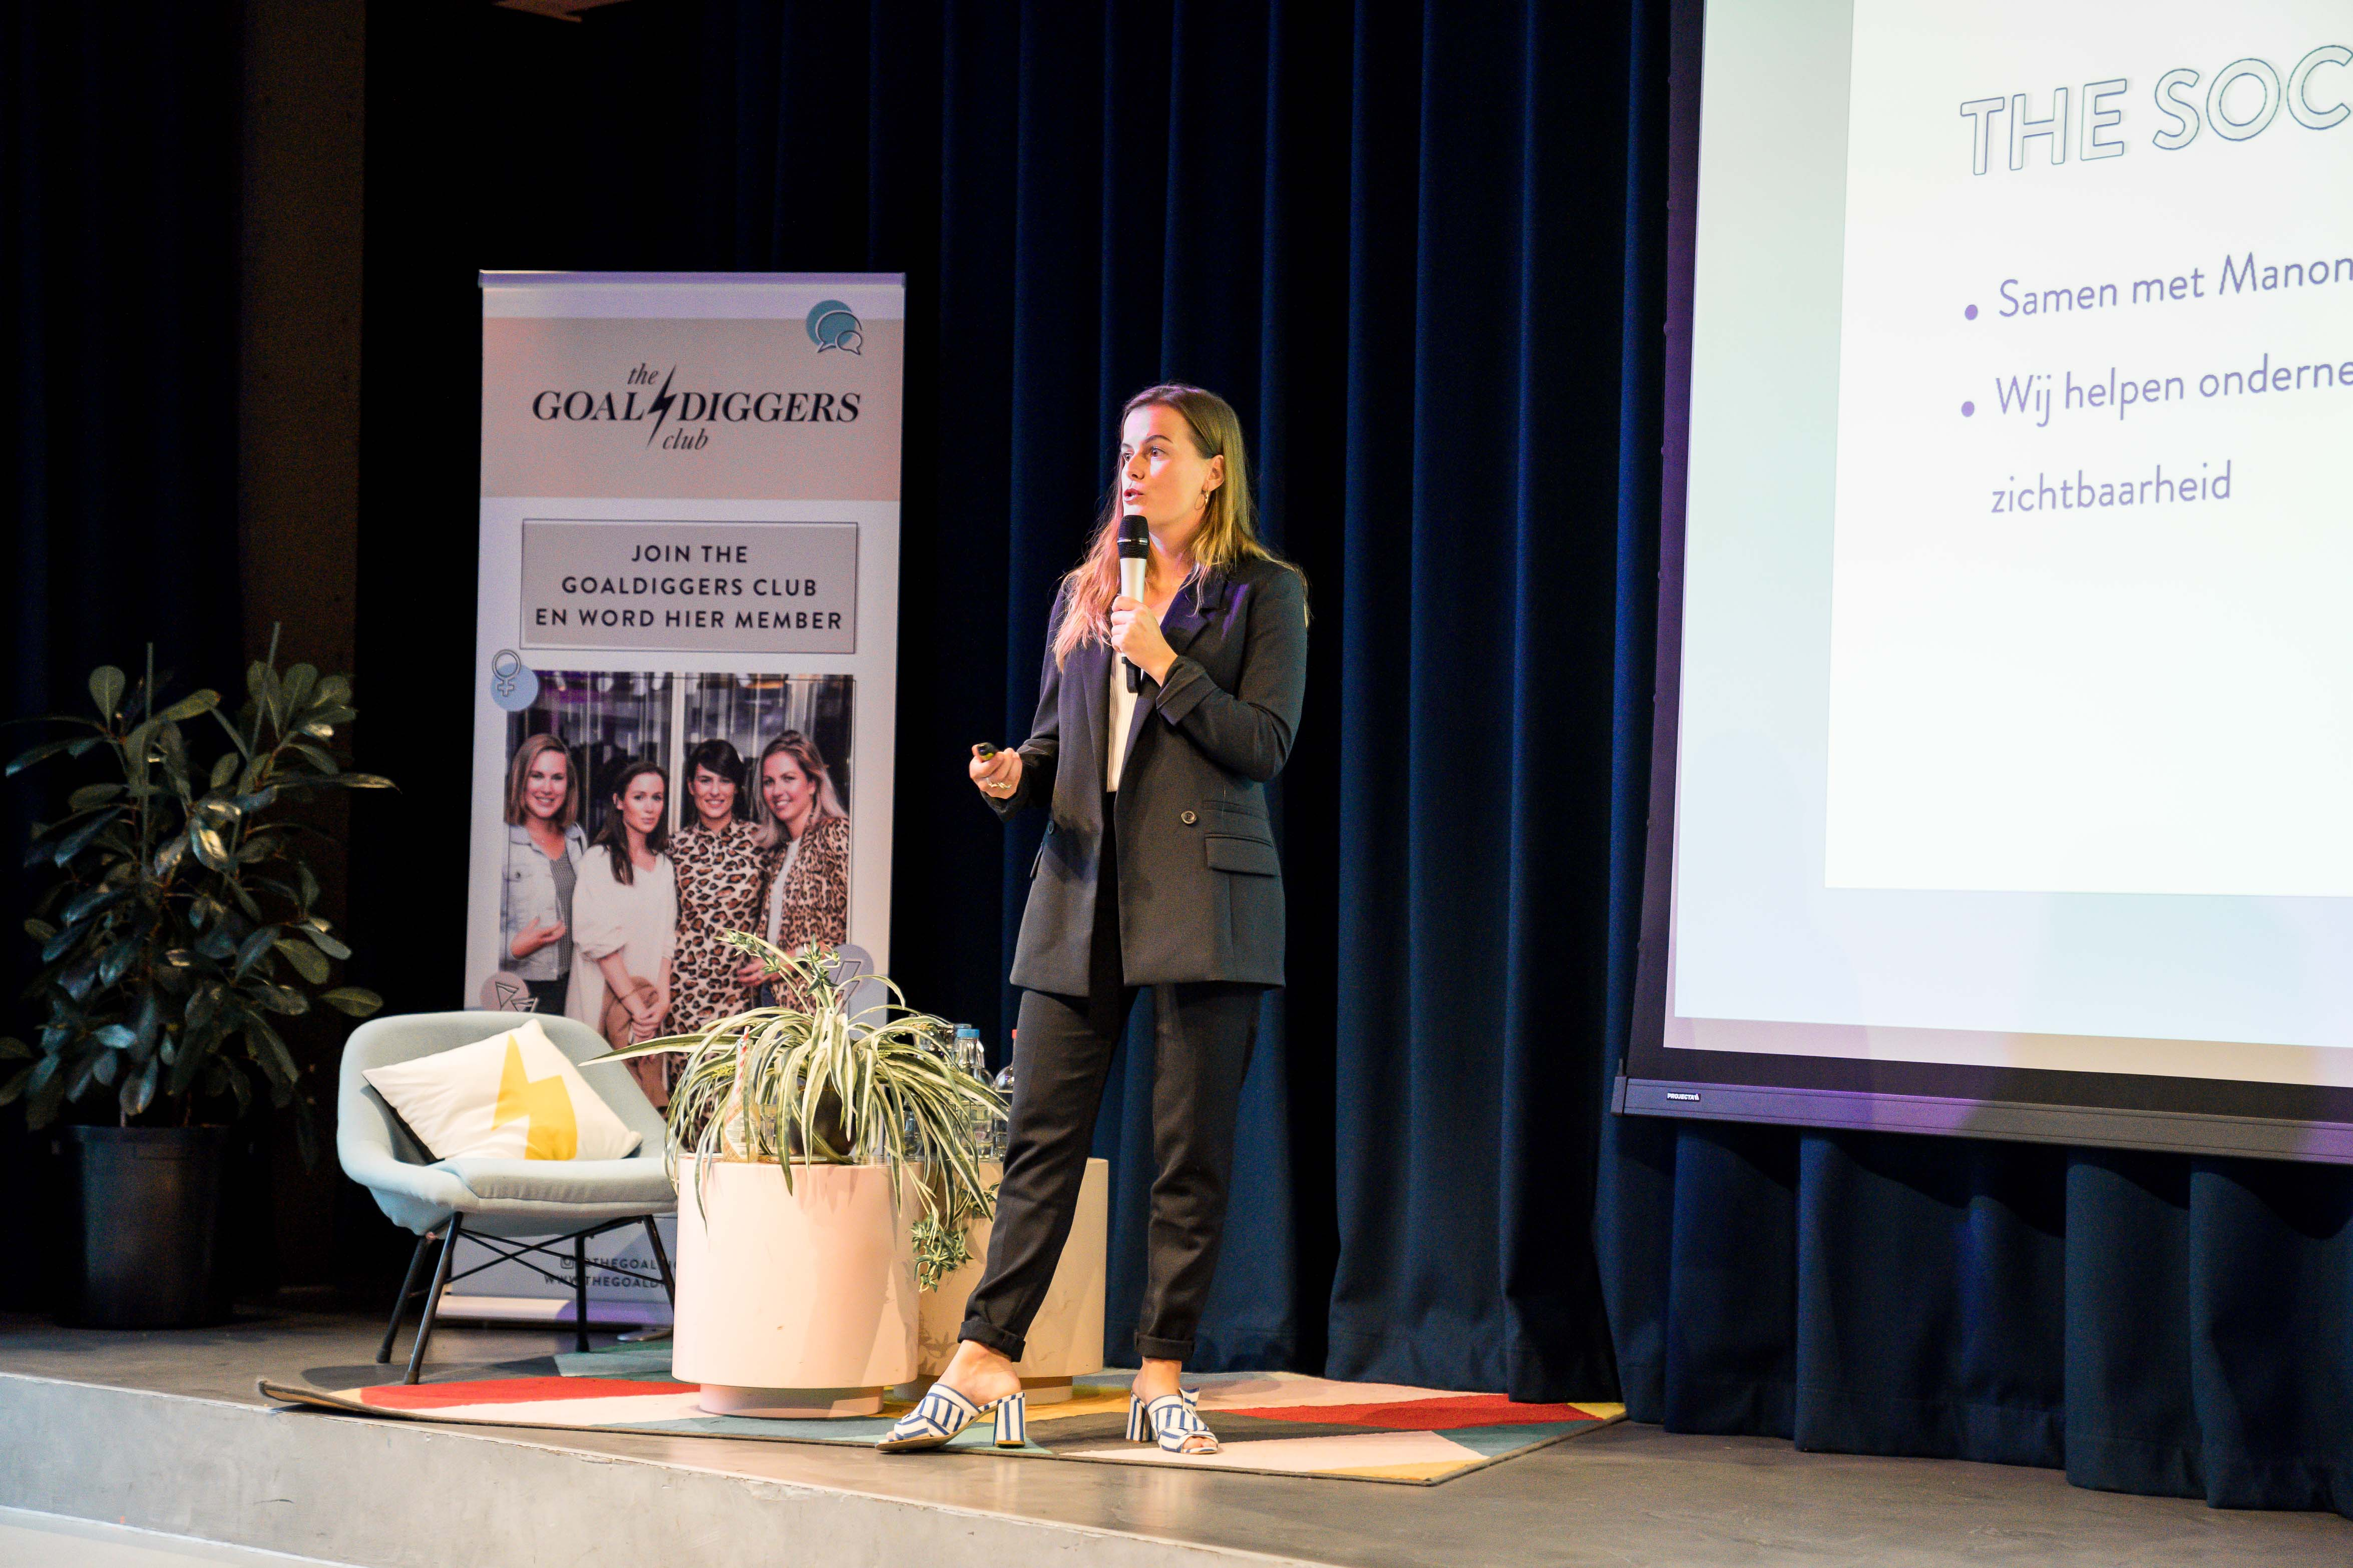 The Goaldiggers Clun Session Personal Branding The Student Hotel Tsh Collab Anouk van Vliet